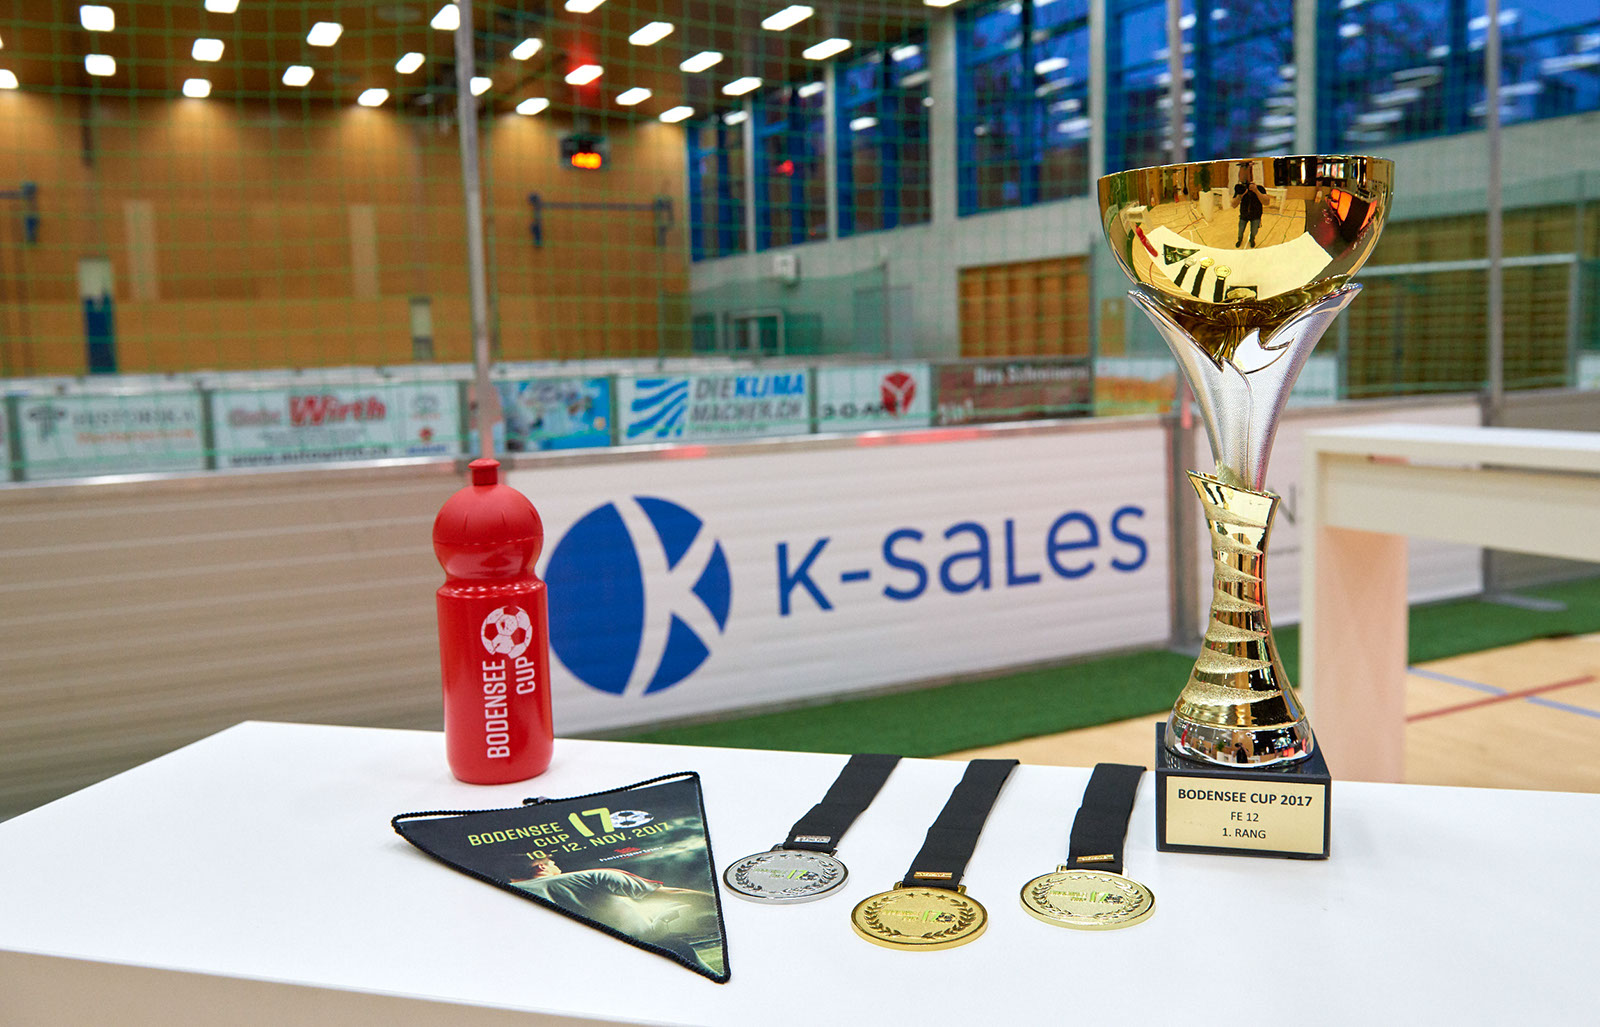 Bodensee-Cup_20171110_175135.jpg